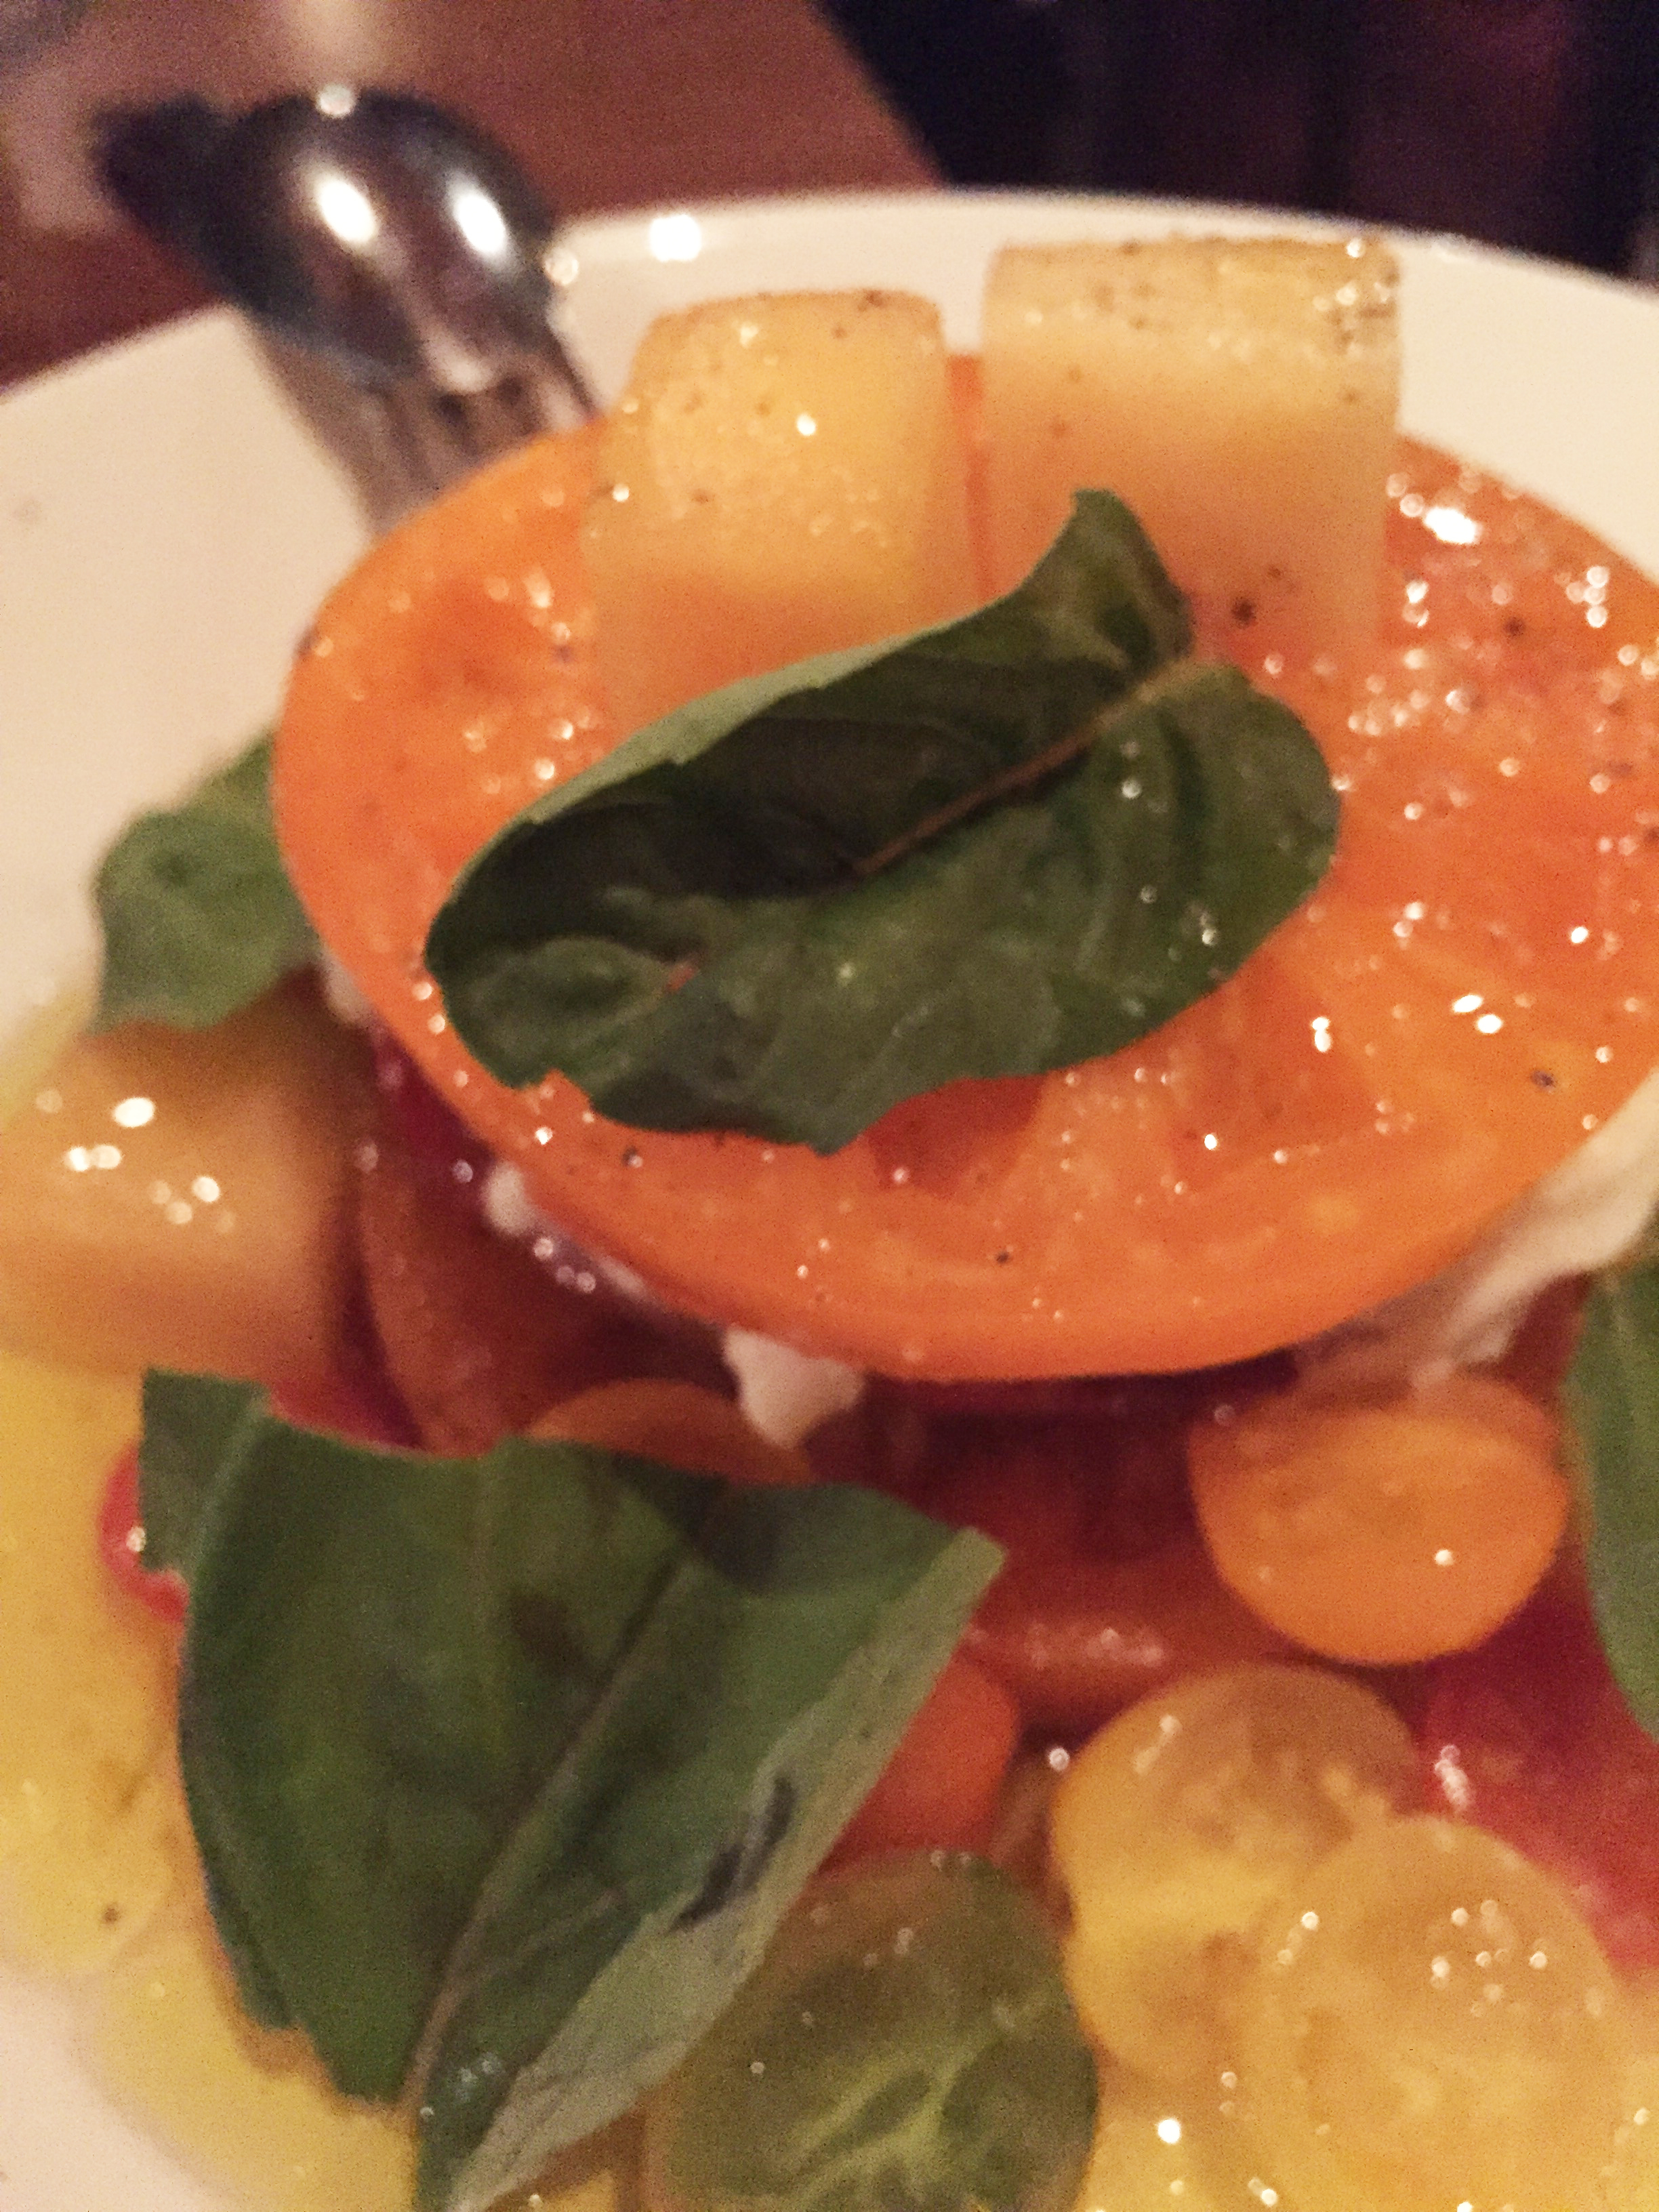 Munak Ranch Heirloom Tomatoes with Gioia burrata, summer melons, and basil.